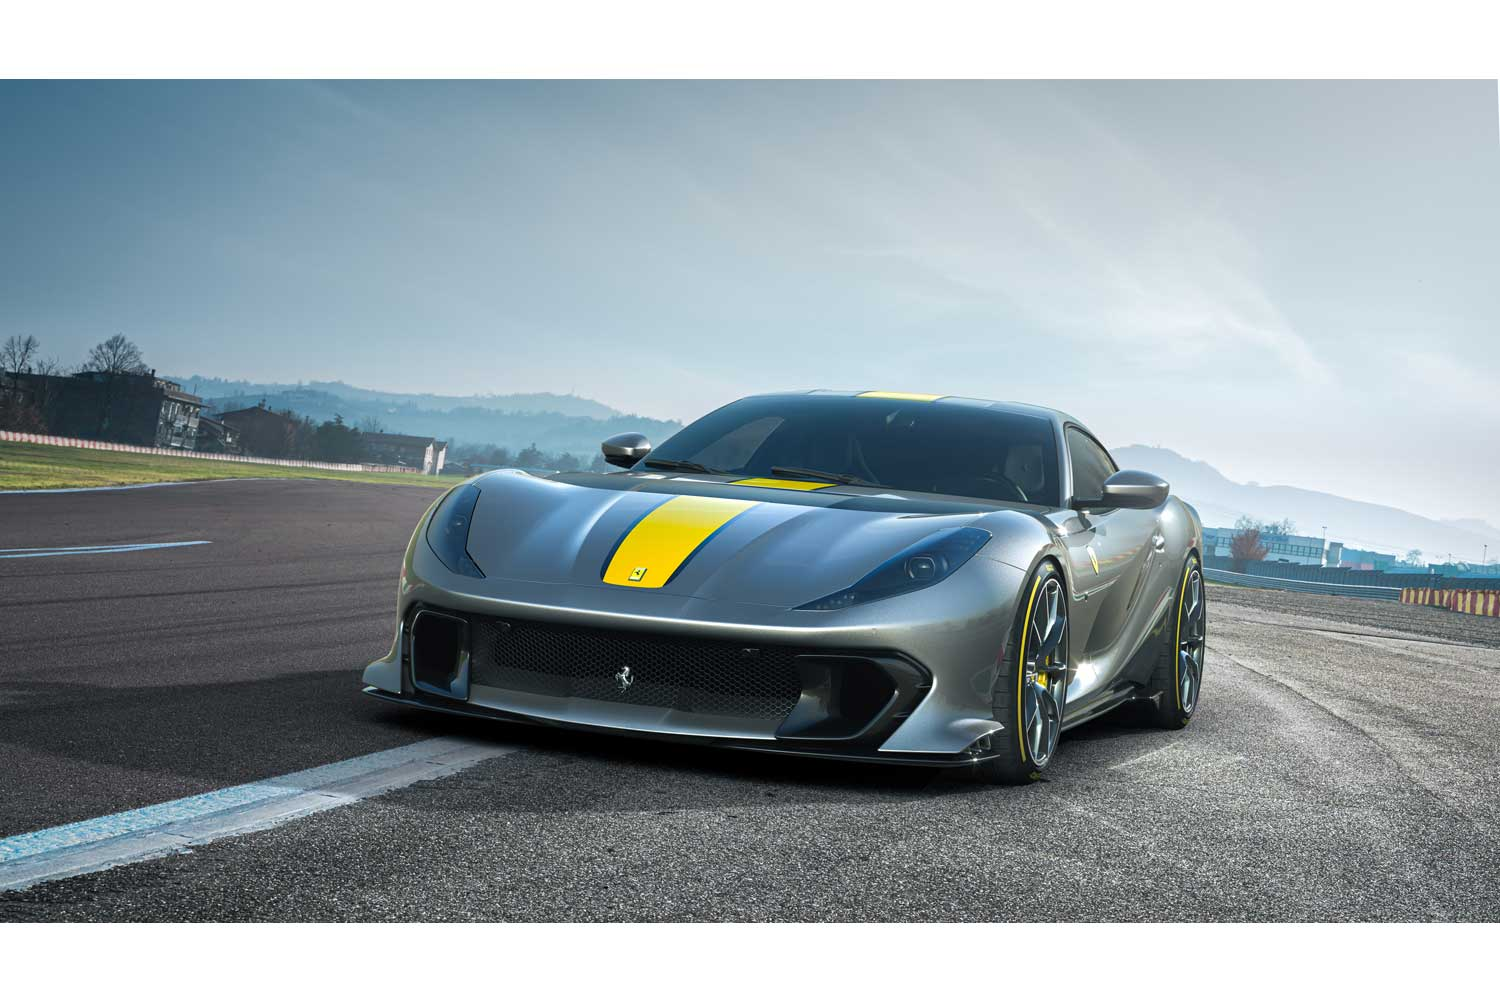 NEW FERRARI LIMITED-EDITION V12: THE COUNTDOWN HAS BEGUN